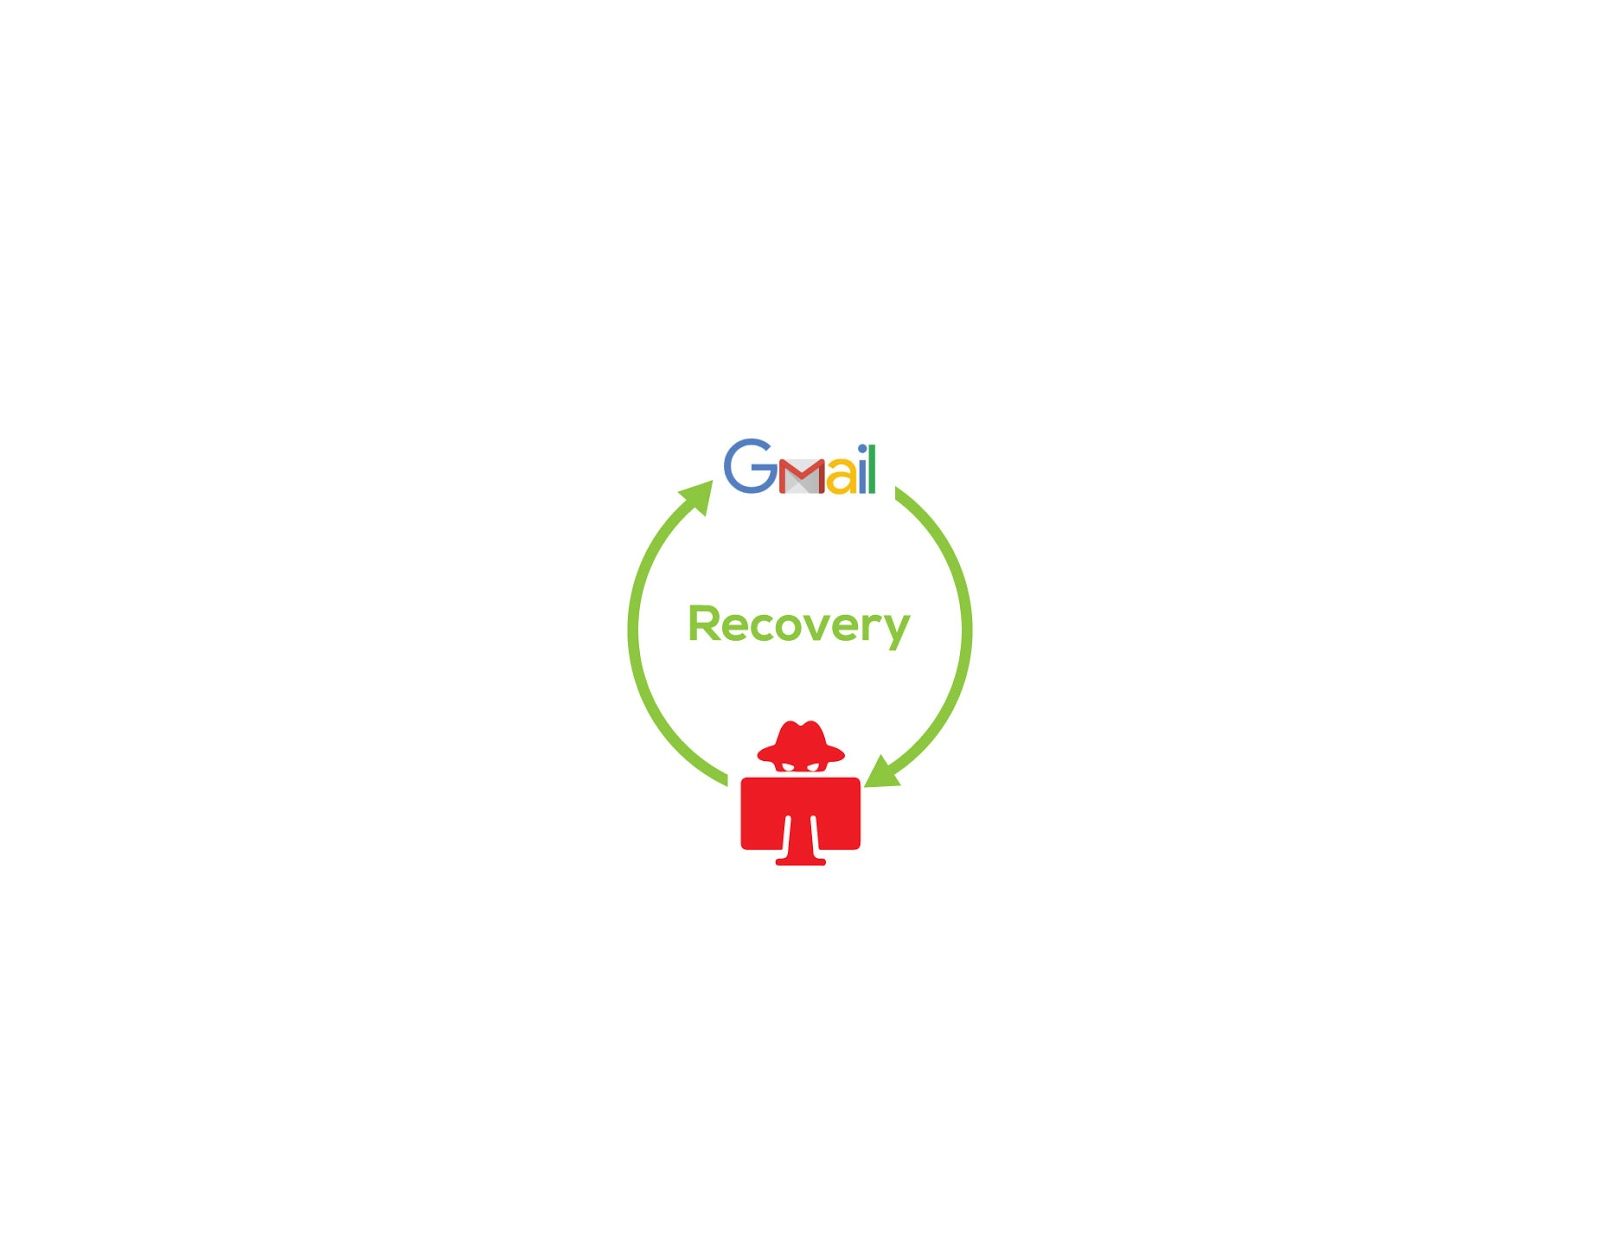 How to recover your Hack or Froget password Gmail Account in